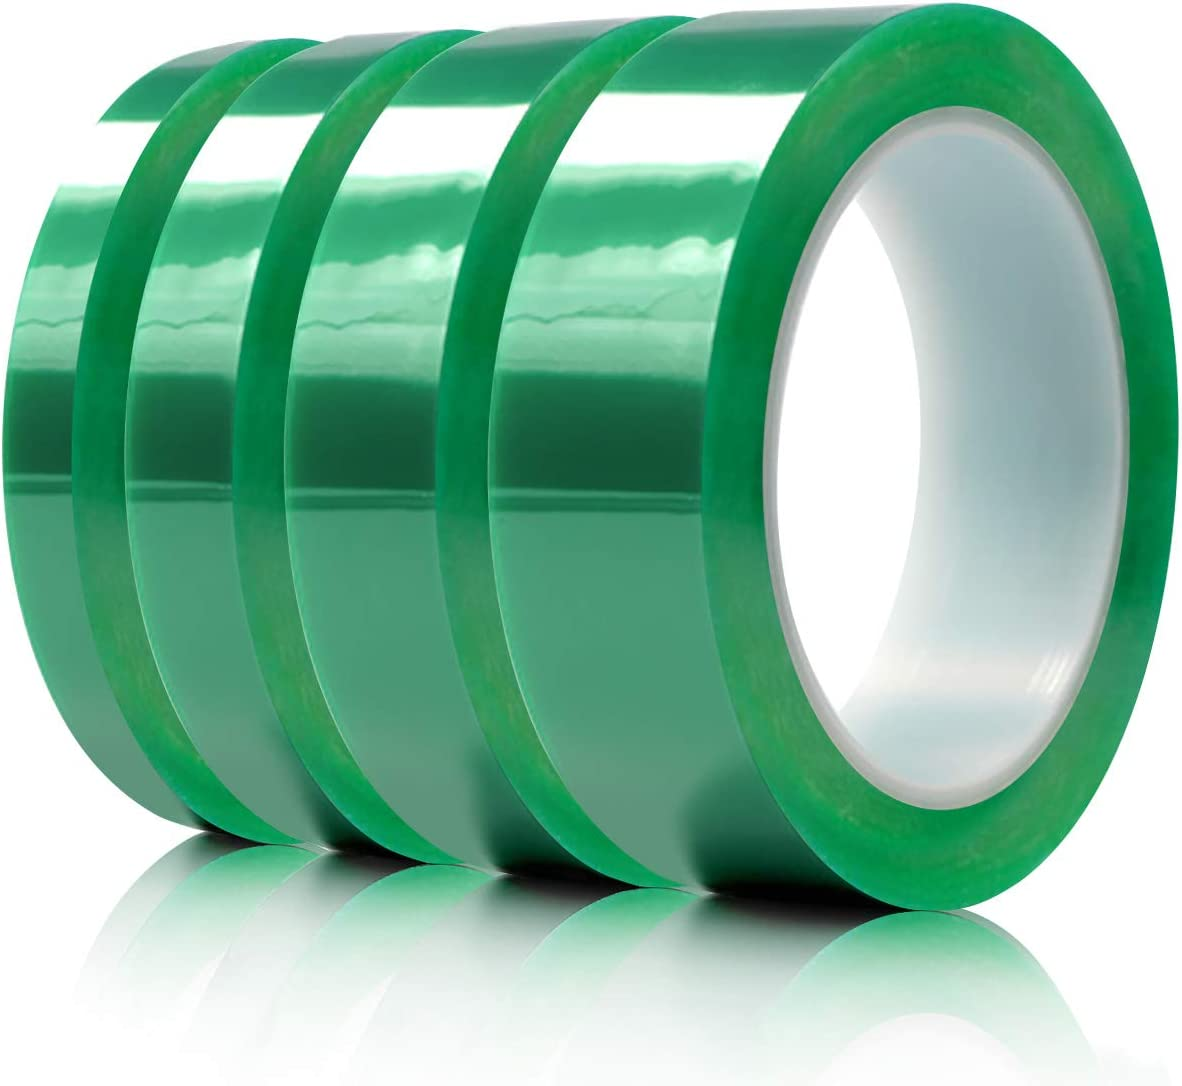 "Hxtape Multi Size Choices Polyester High Temperature Green Powder Coating Masking PET Tape, Ideal to Painting, Anodizing Applications,1/4 inch, 1/2 inch, 3/4"",1 inch, (36yds/roll) 4rolls"